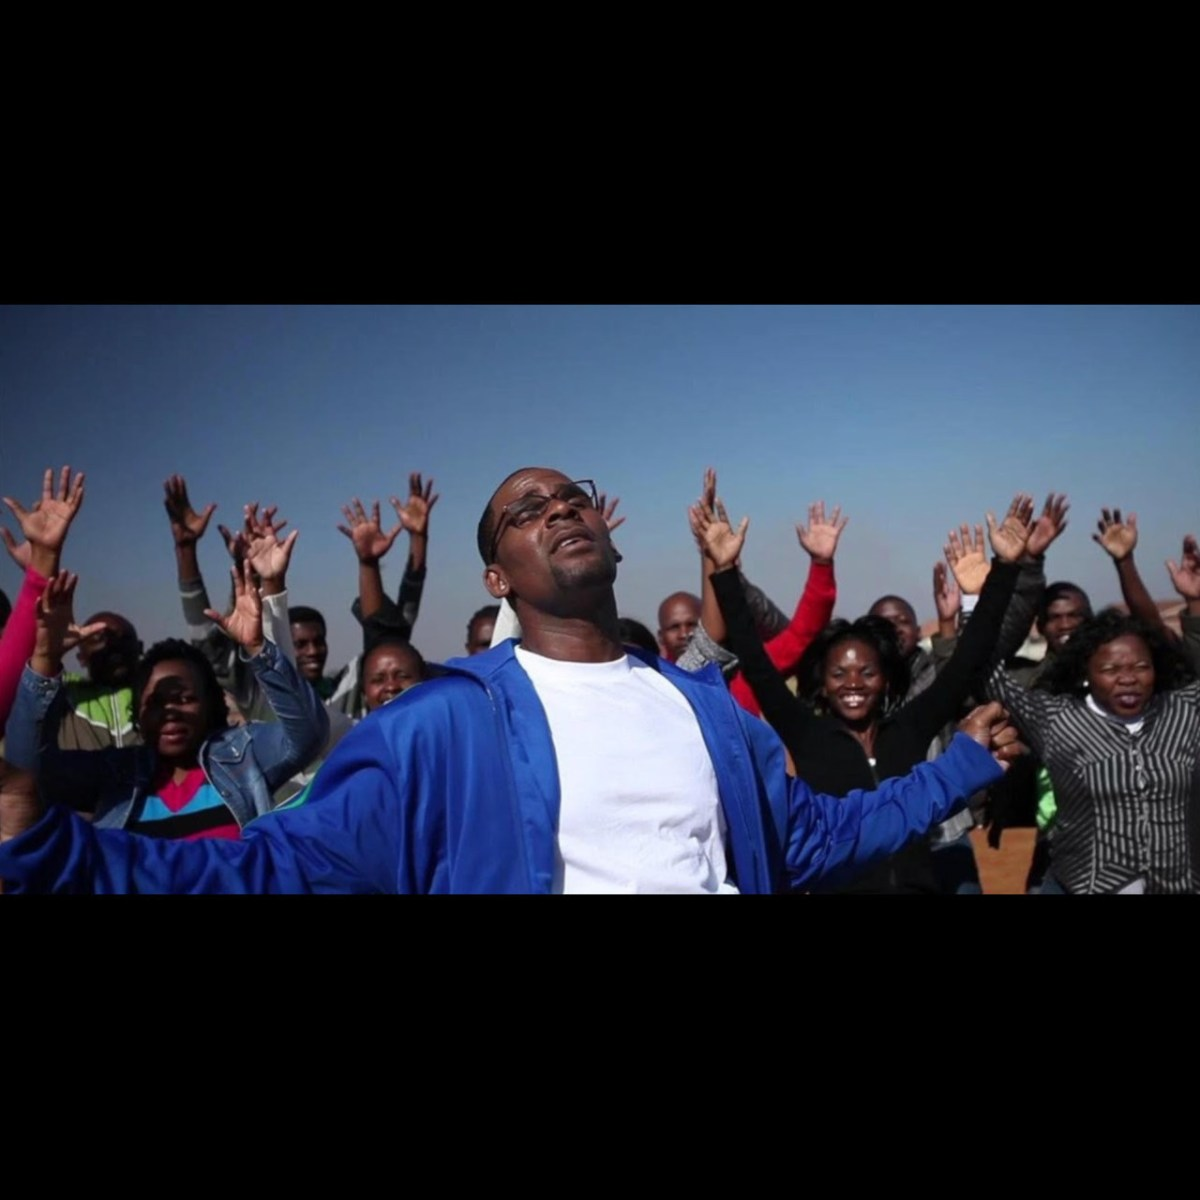 R. Kelly - Sign Of A Victory (ft. Soweto Spiritual Singers) (Thumbnail)